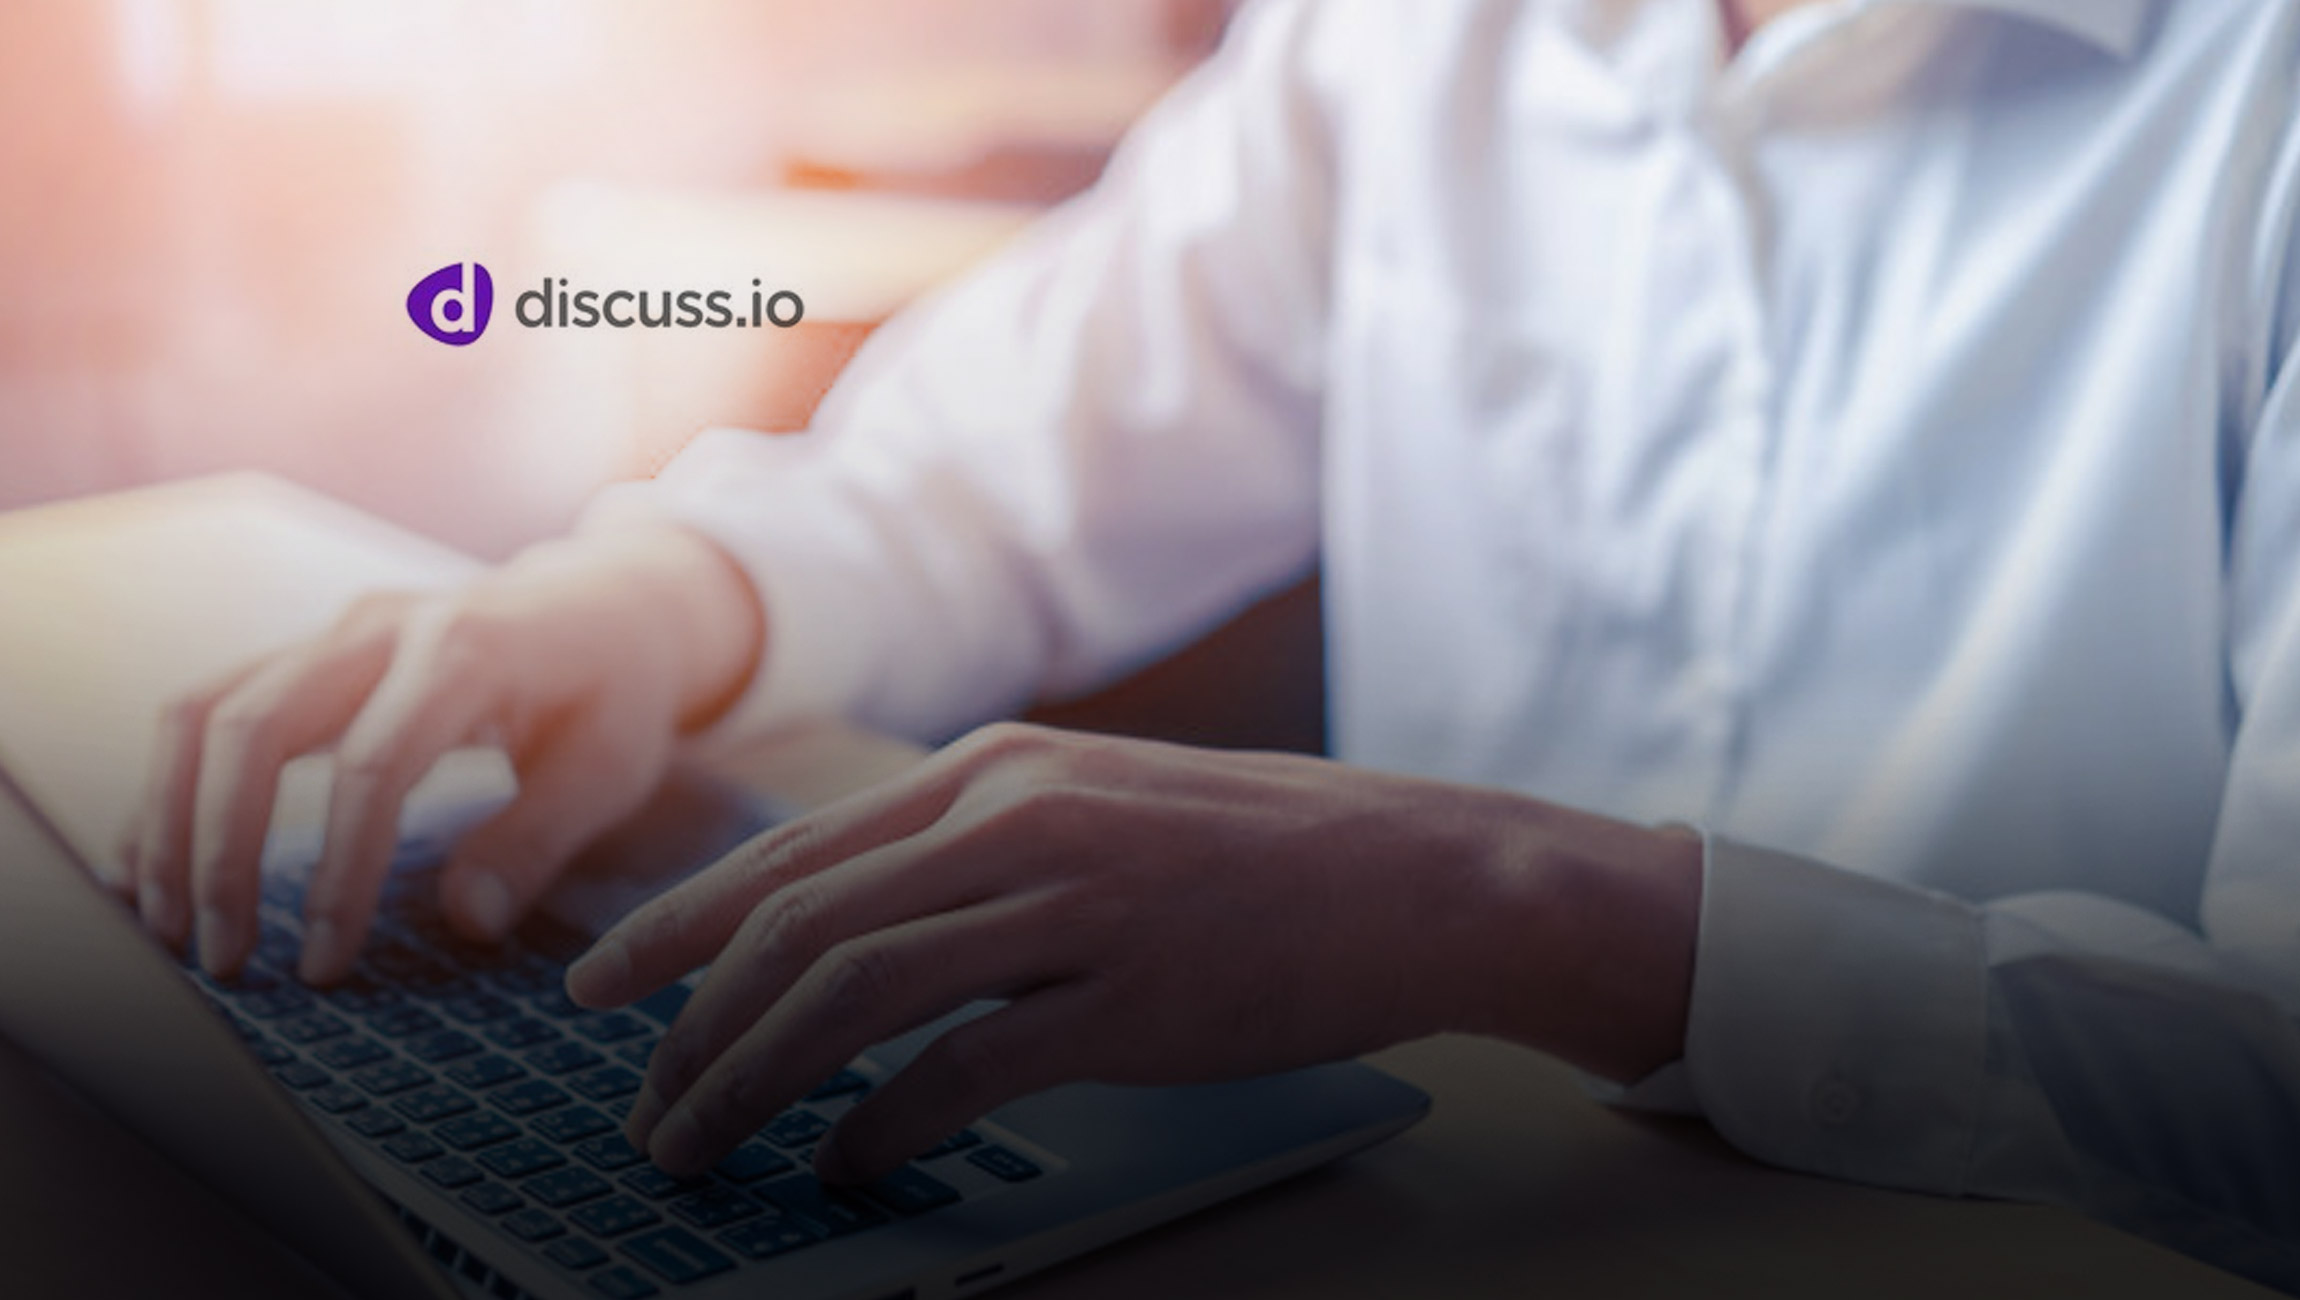 Discuss.io Trend Review: The Future of Qualitative Research & Video Conferencing Tools in the Era of Digital Connection and Acceleration